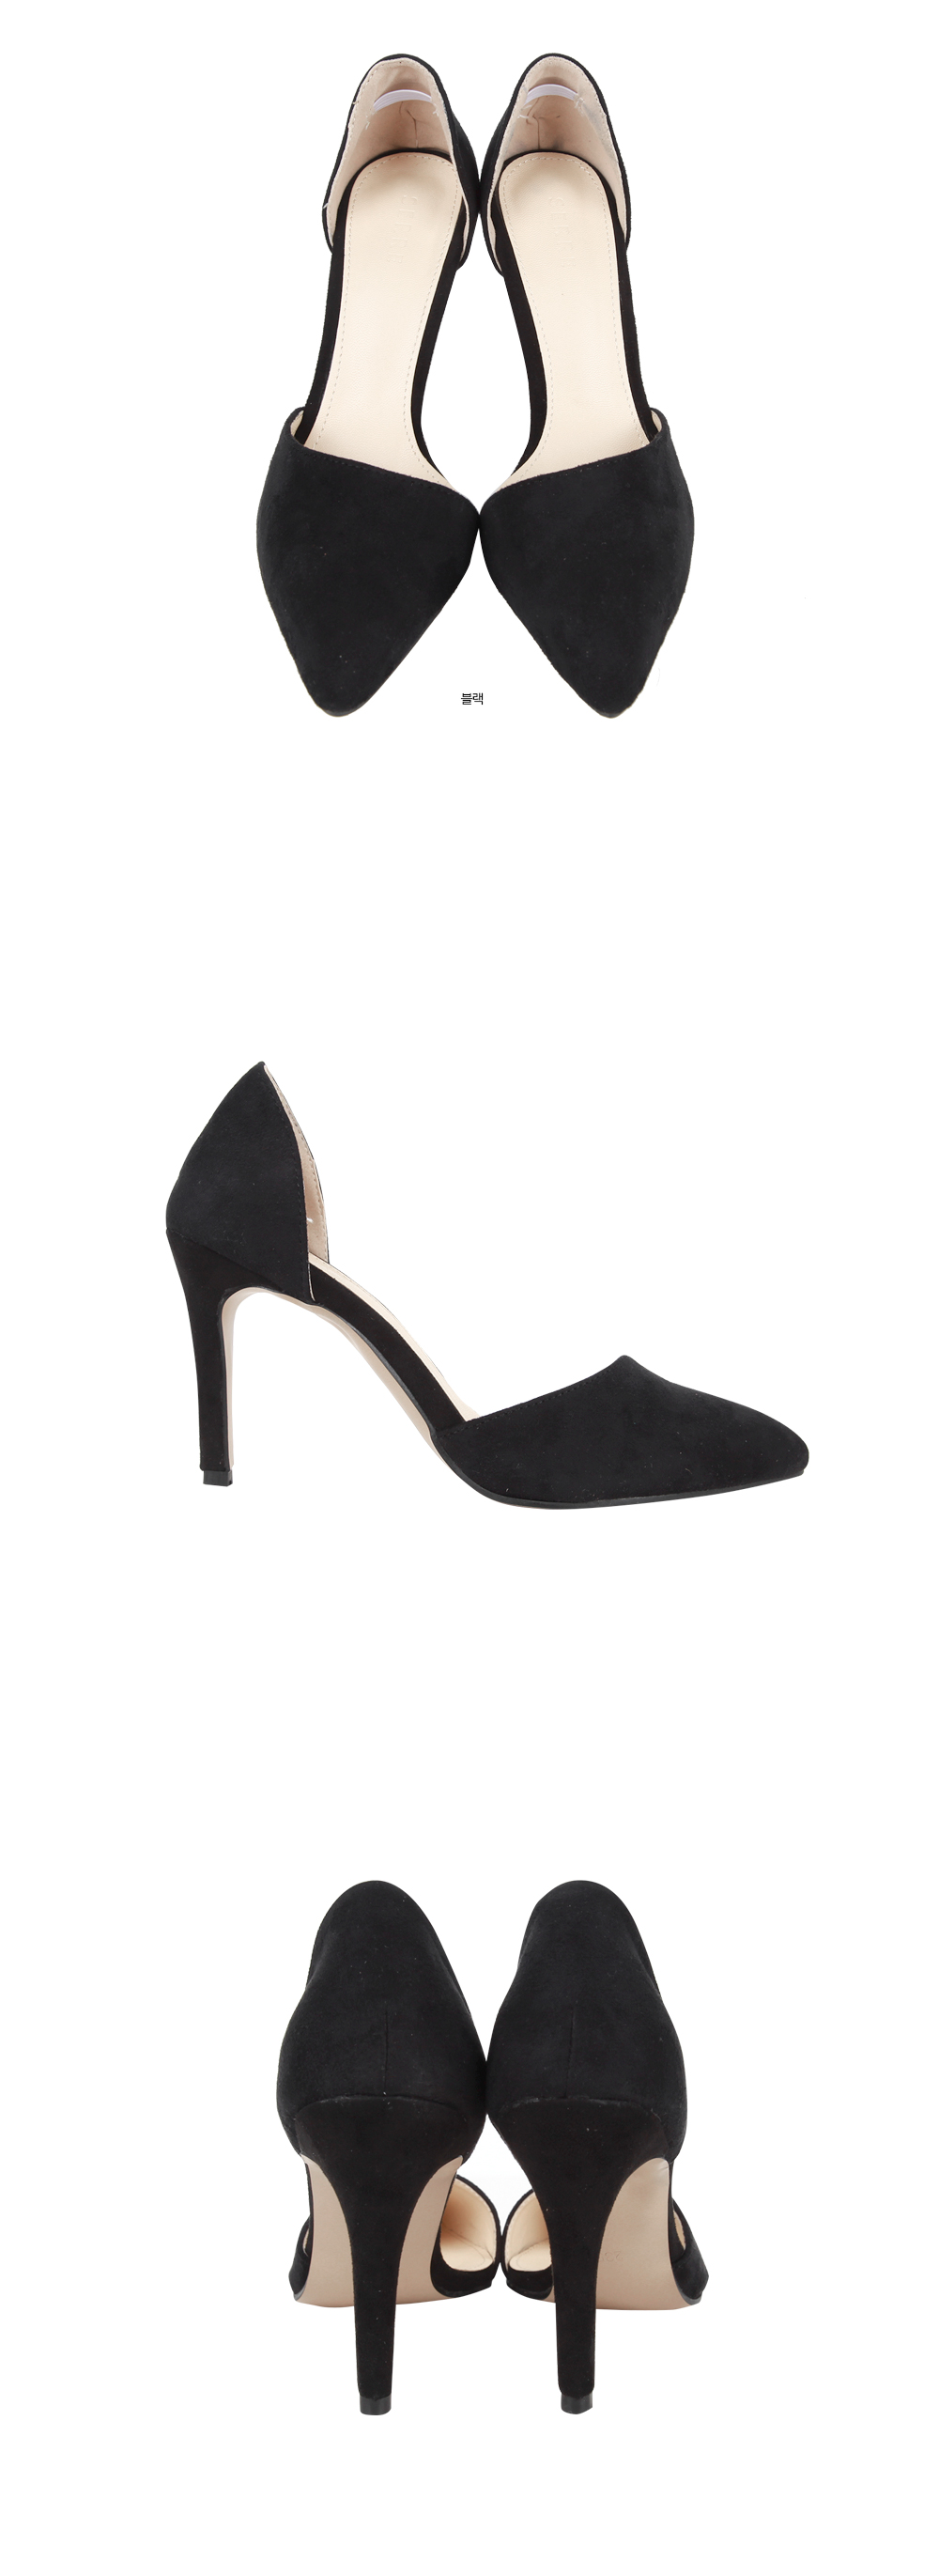 feminine stiletto heel (3 colors)